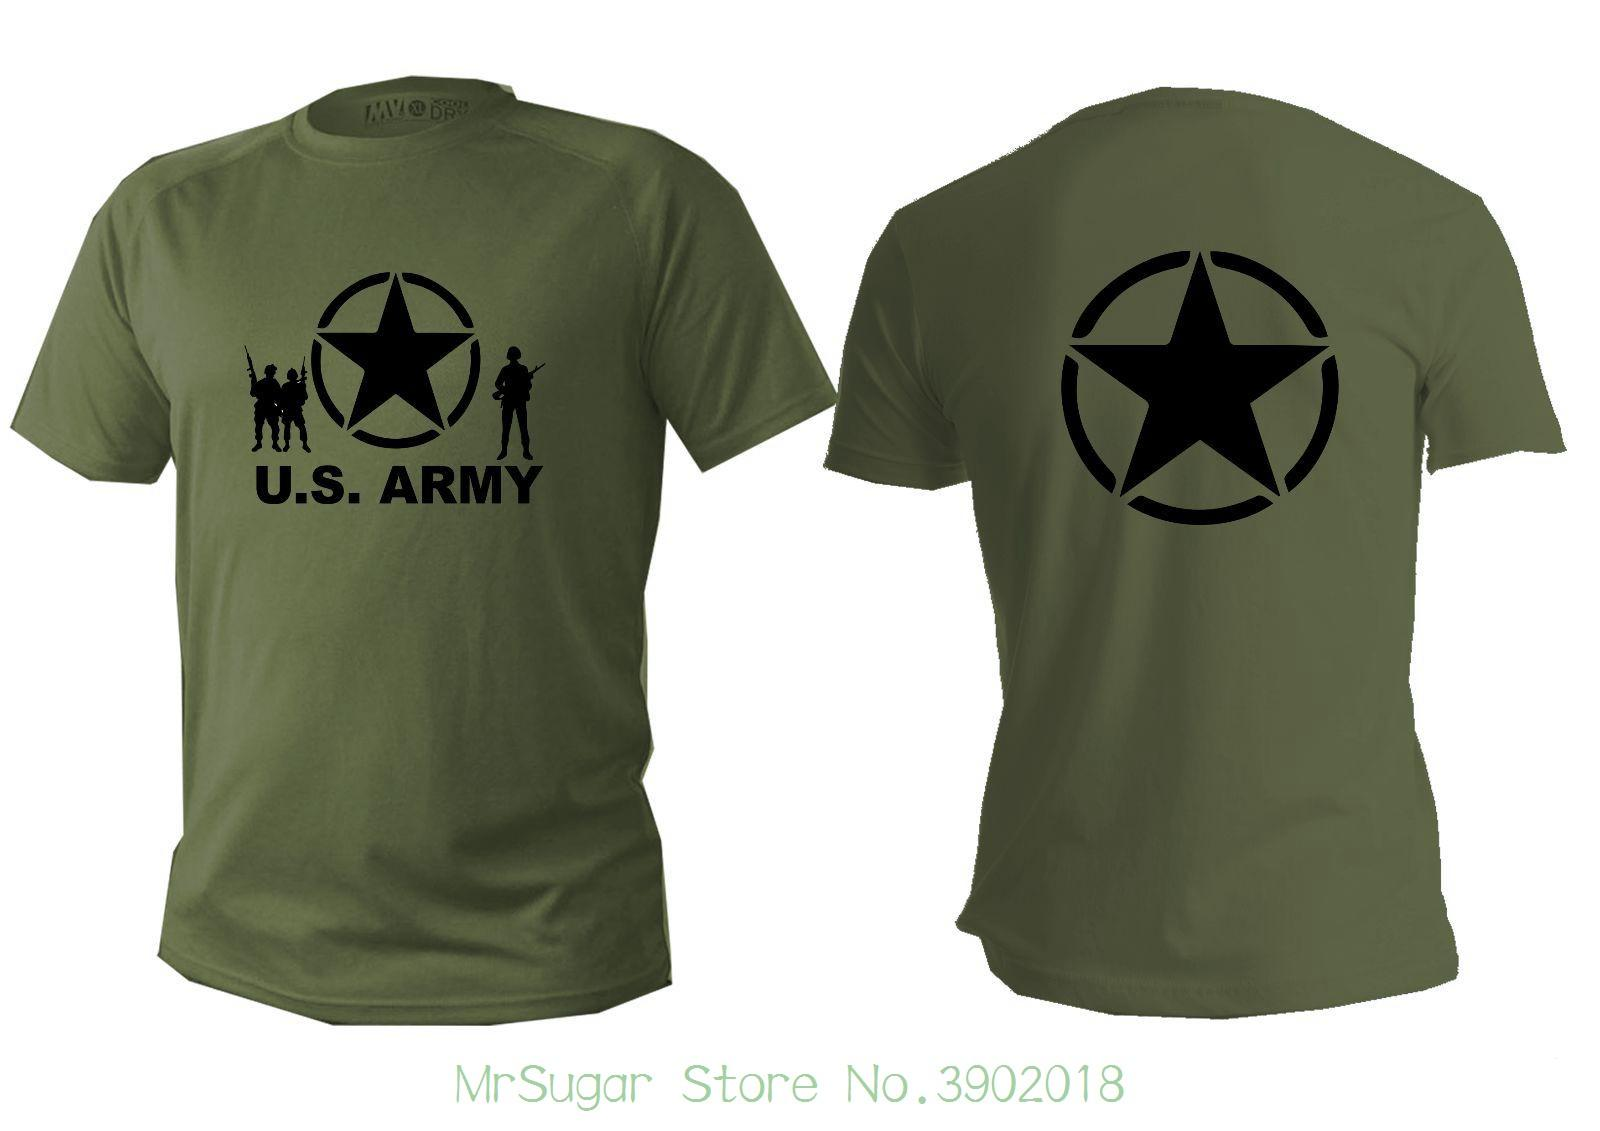 T Shirt Mens Dry Fit Short Sleeve Green Olive Us Army Military Man Usa  Shirts Summer New Men Cotton T Shirt T Shirt Online T Shirt Designer From  ... ff48f0817a1